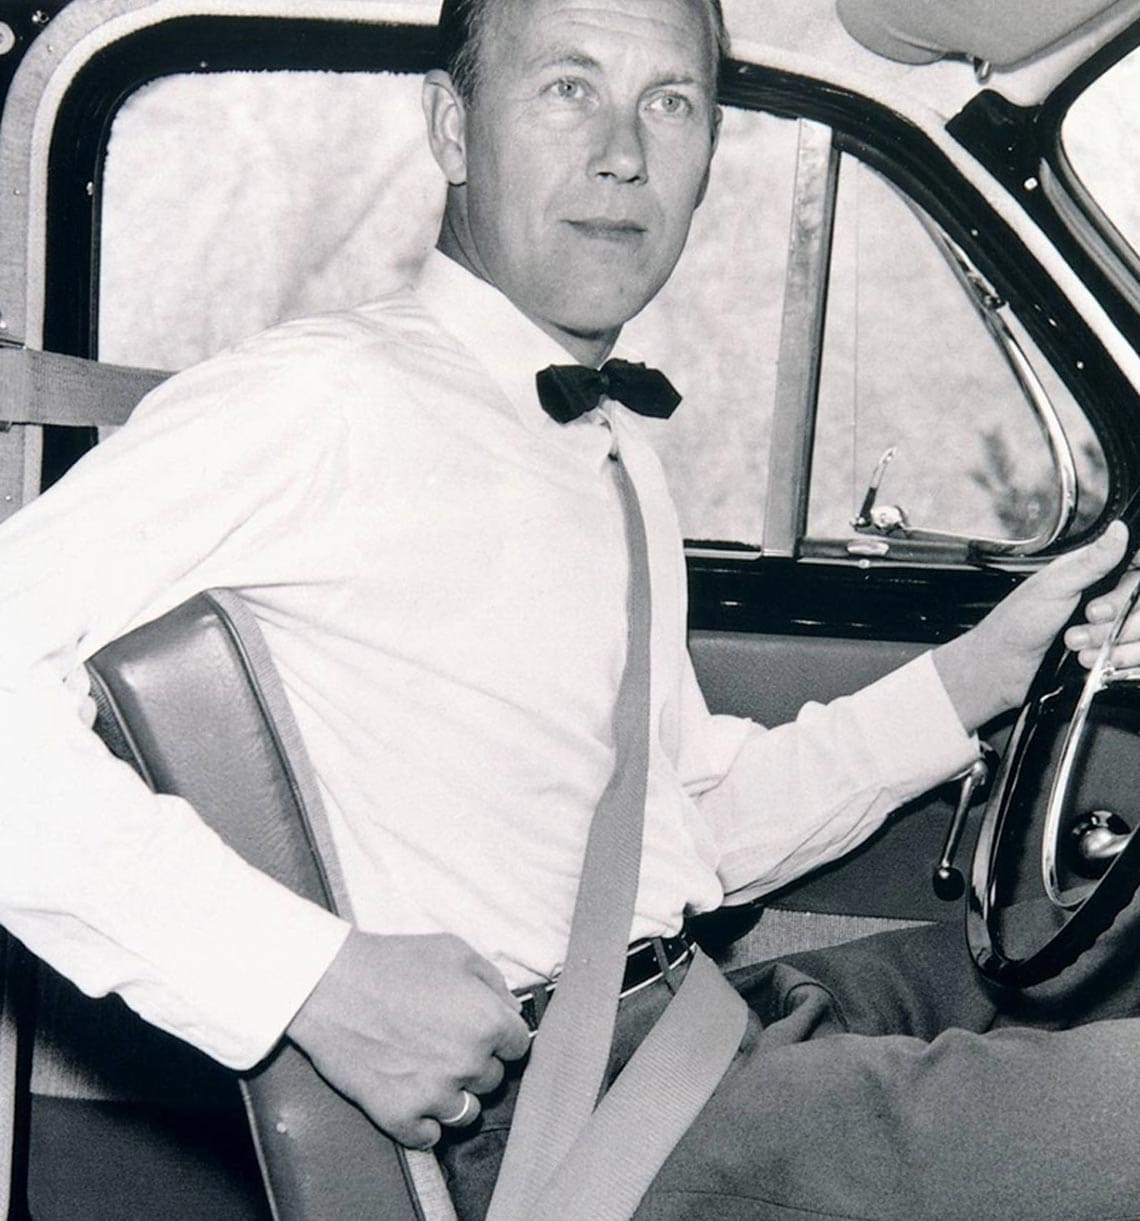 Nils Bohlin with Volvo seatbelt